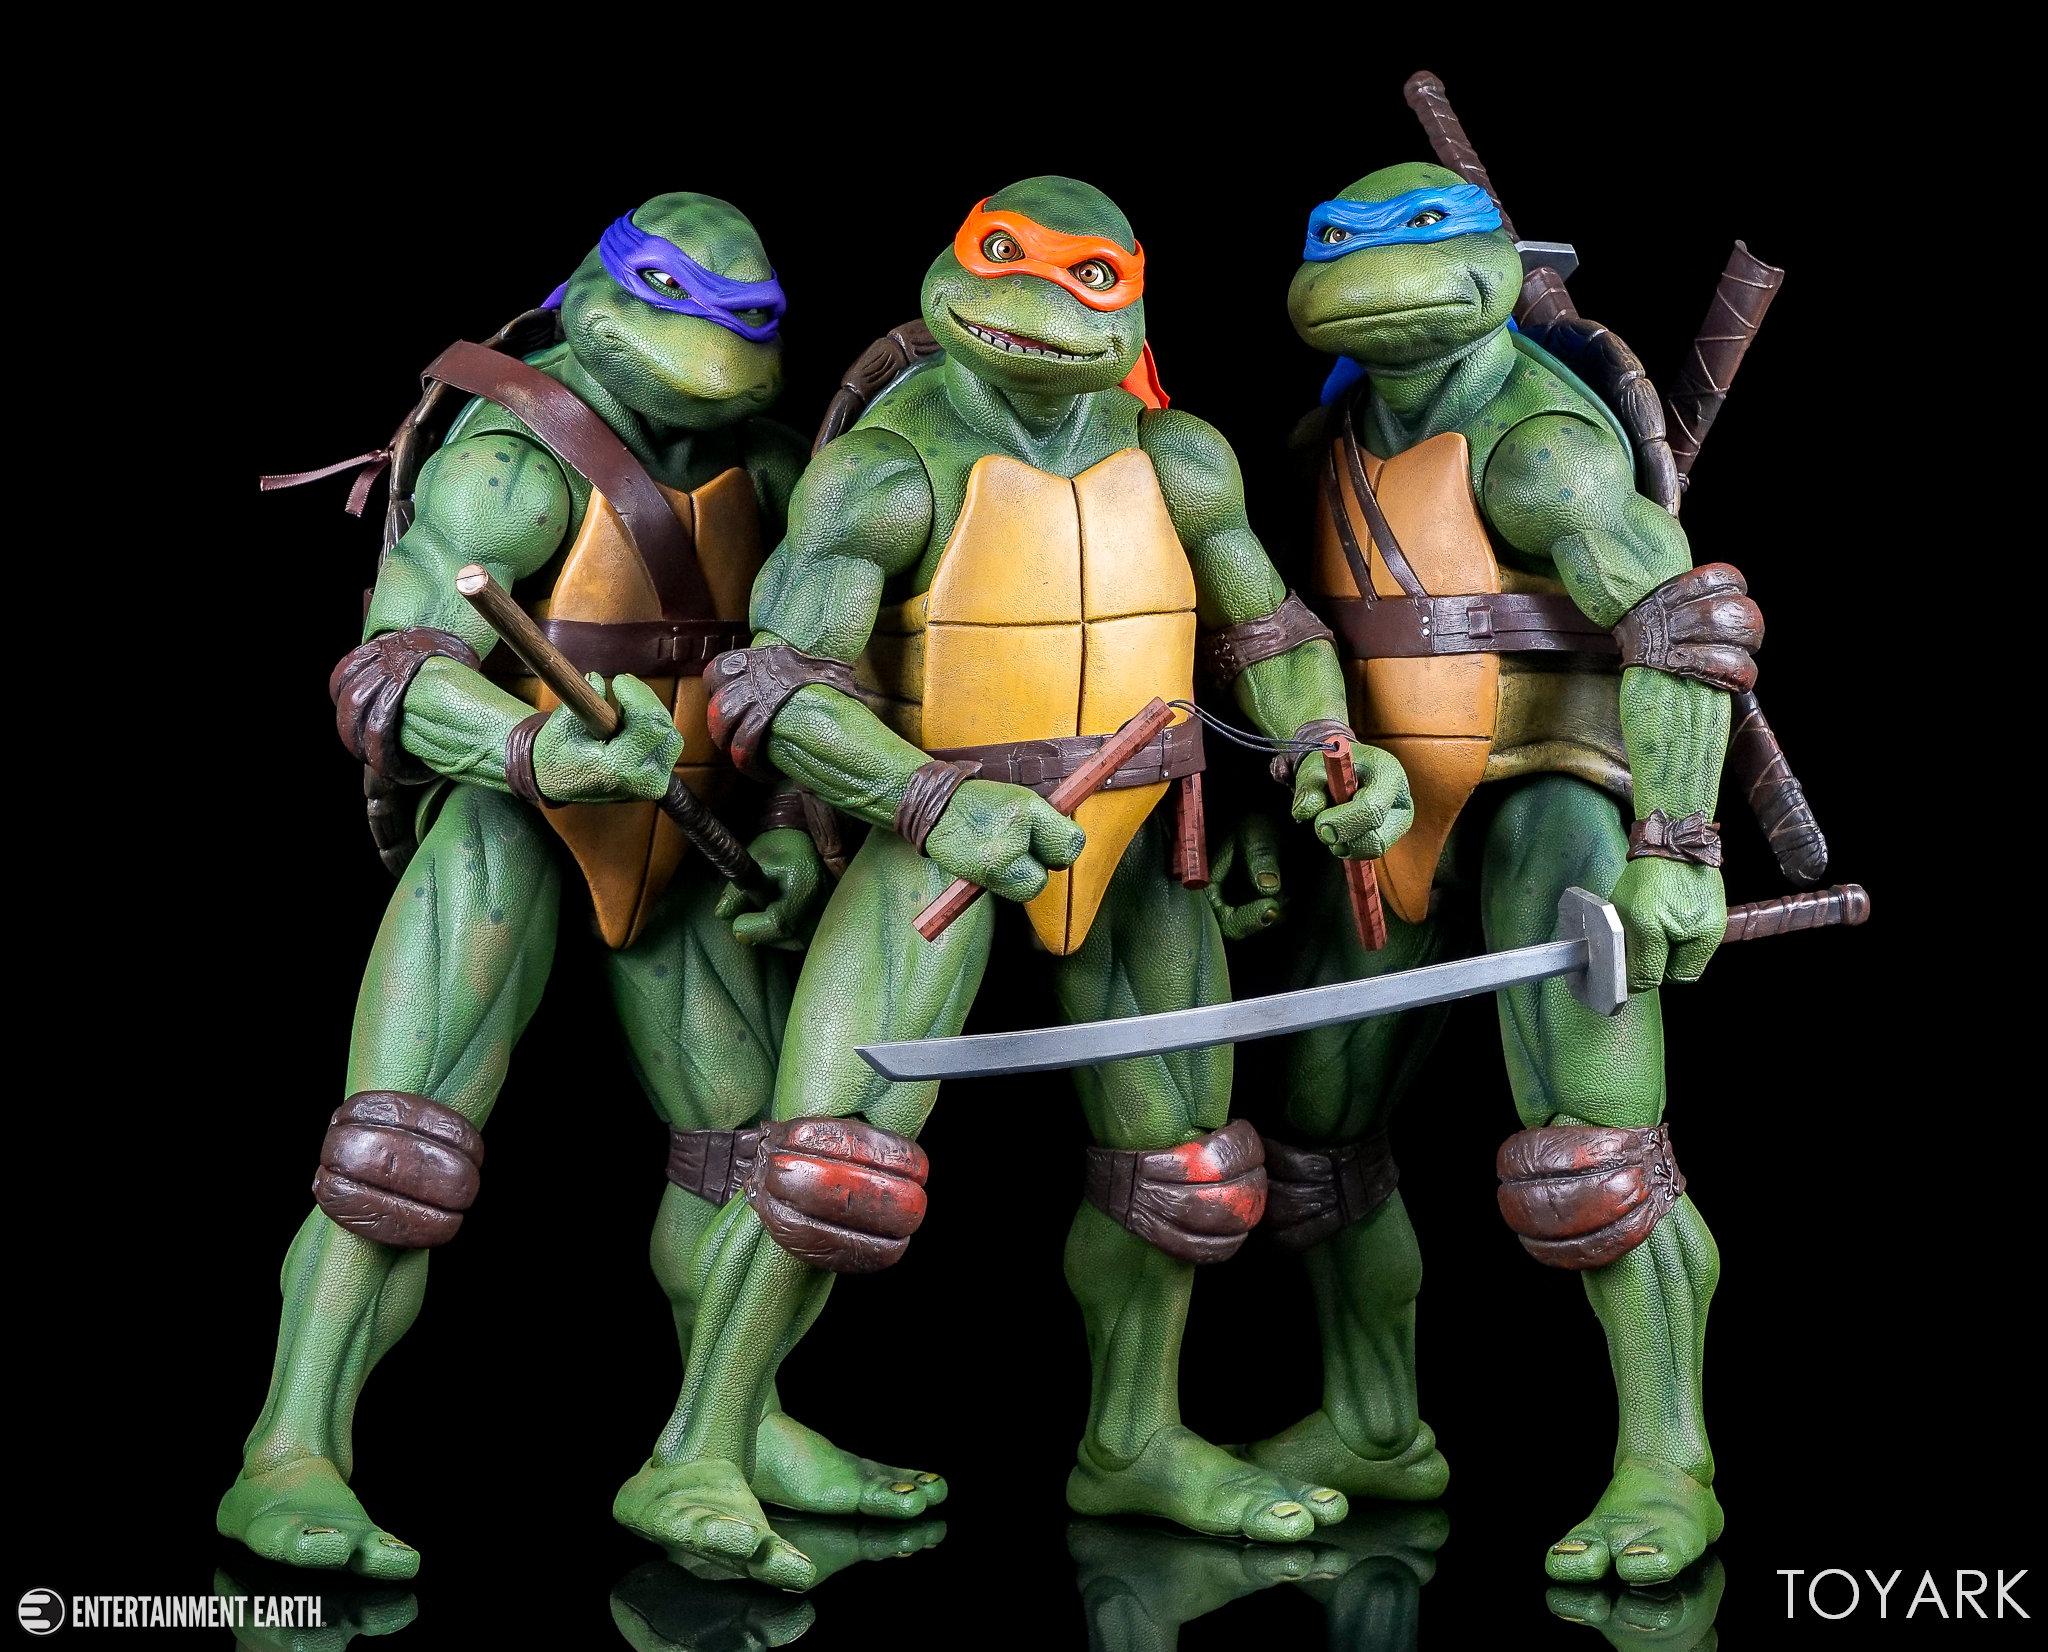 http://news.toyark.com/wp-content/uploads/sites/4/2017/10/NECA-Quarter-Scale-TMNT-Michelangelo-025.jpg